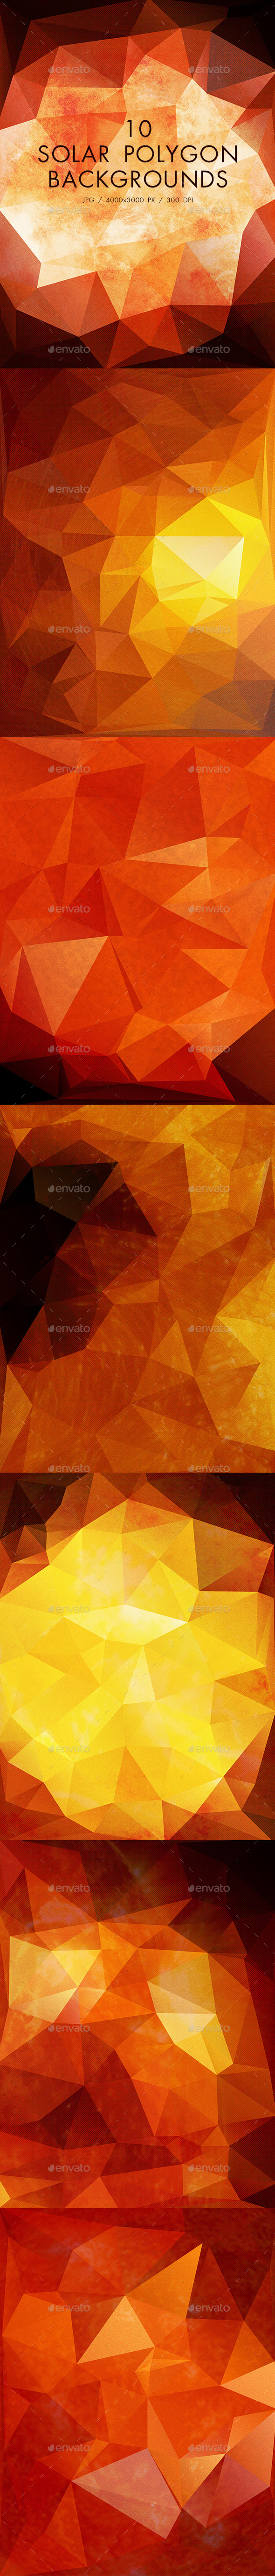 GraphicRiver Solar Polygon Backgrounds 10811142